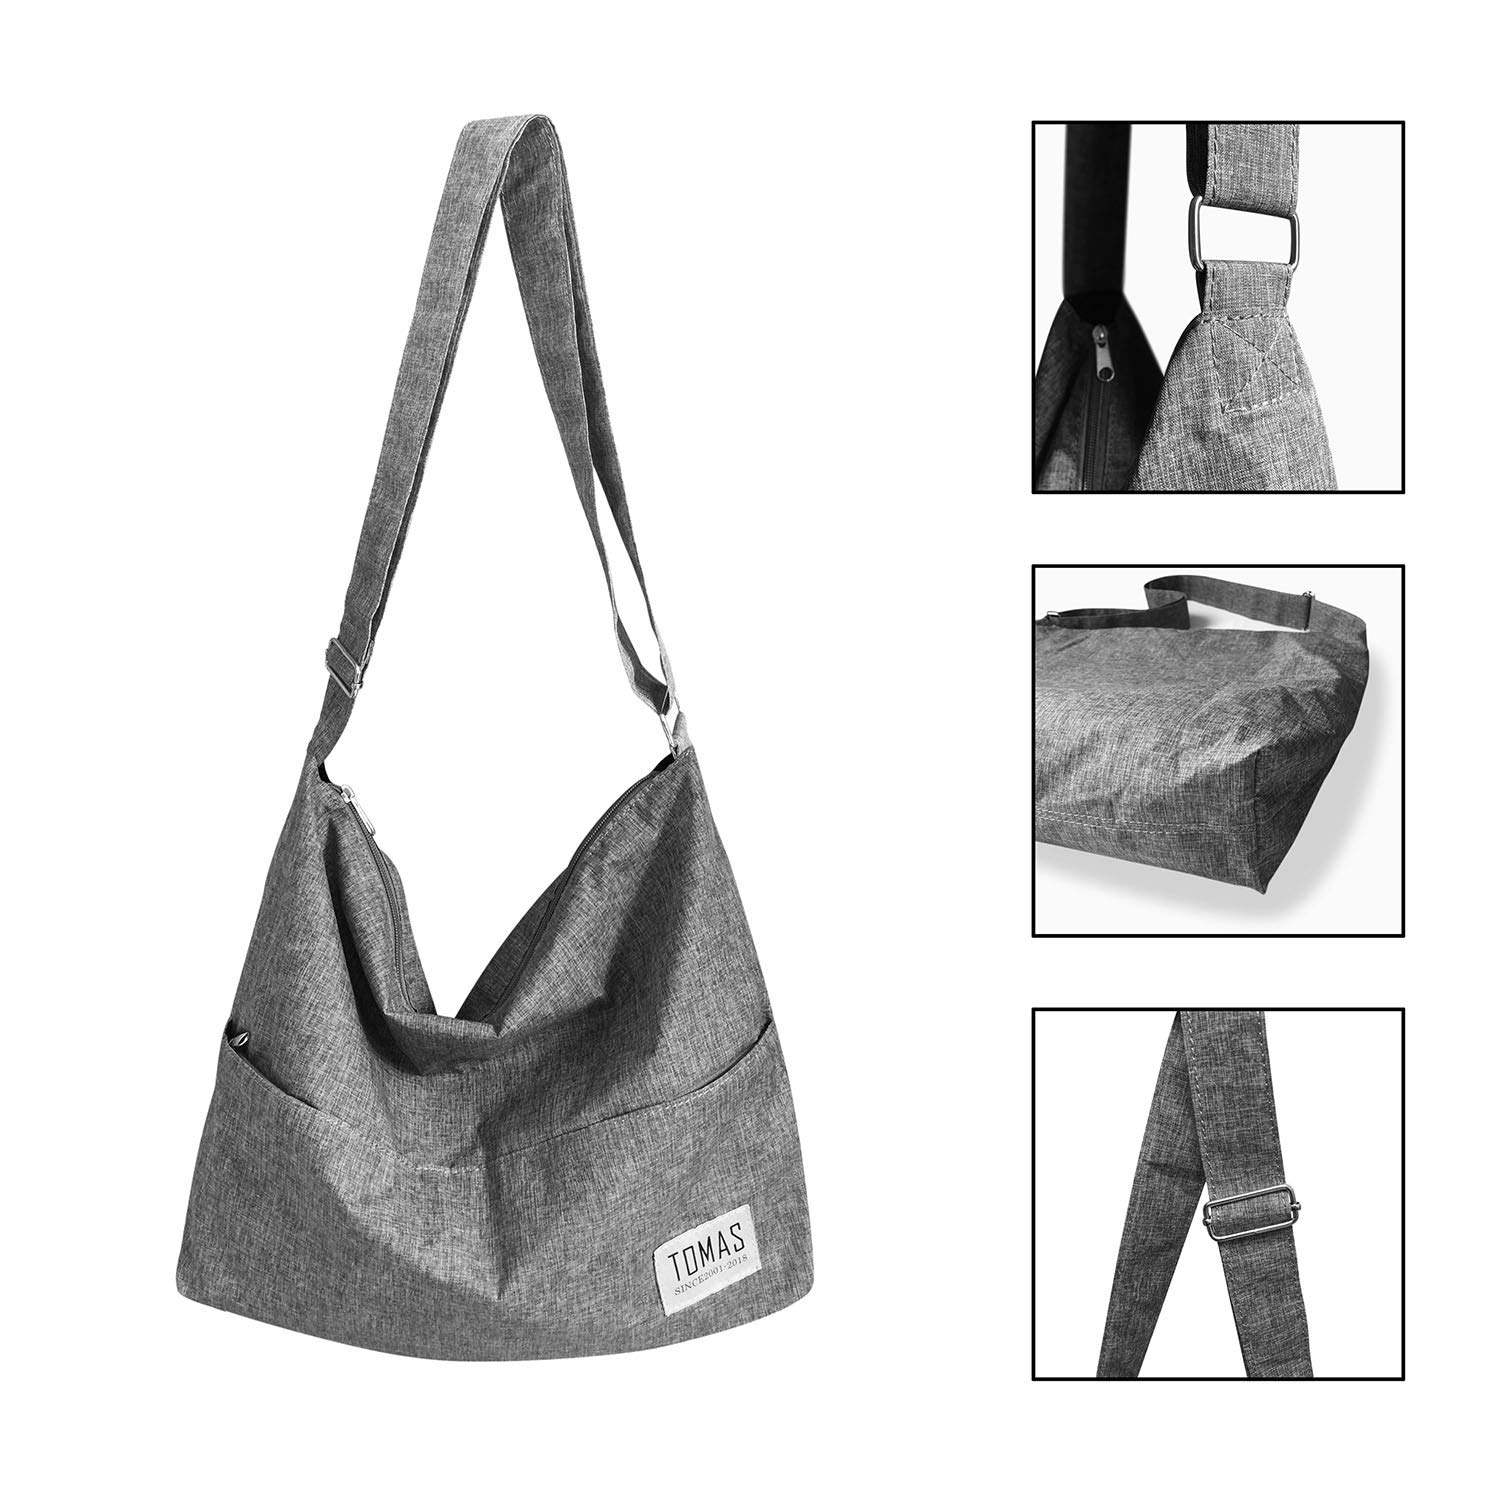 TOMAS Women Casual, Simple, Fashion, Resistant To Dirty, Lightweight,Durable Canvas Hobo Bag, Single Shoulder Bag Totes Bag Crossbody Bag by TOMAS (Image #8)